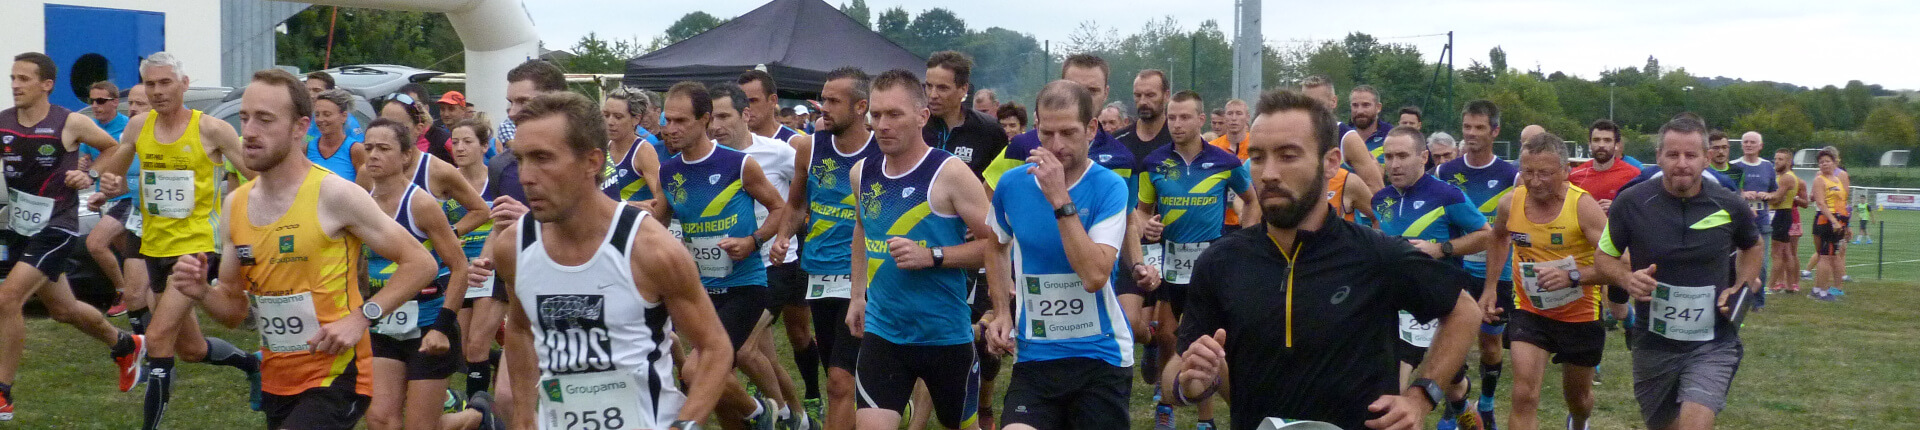 course du val de rance caulnes